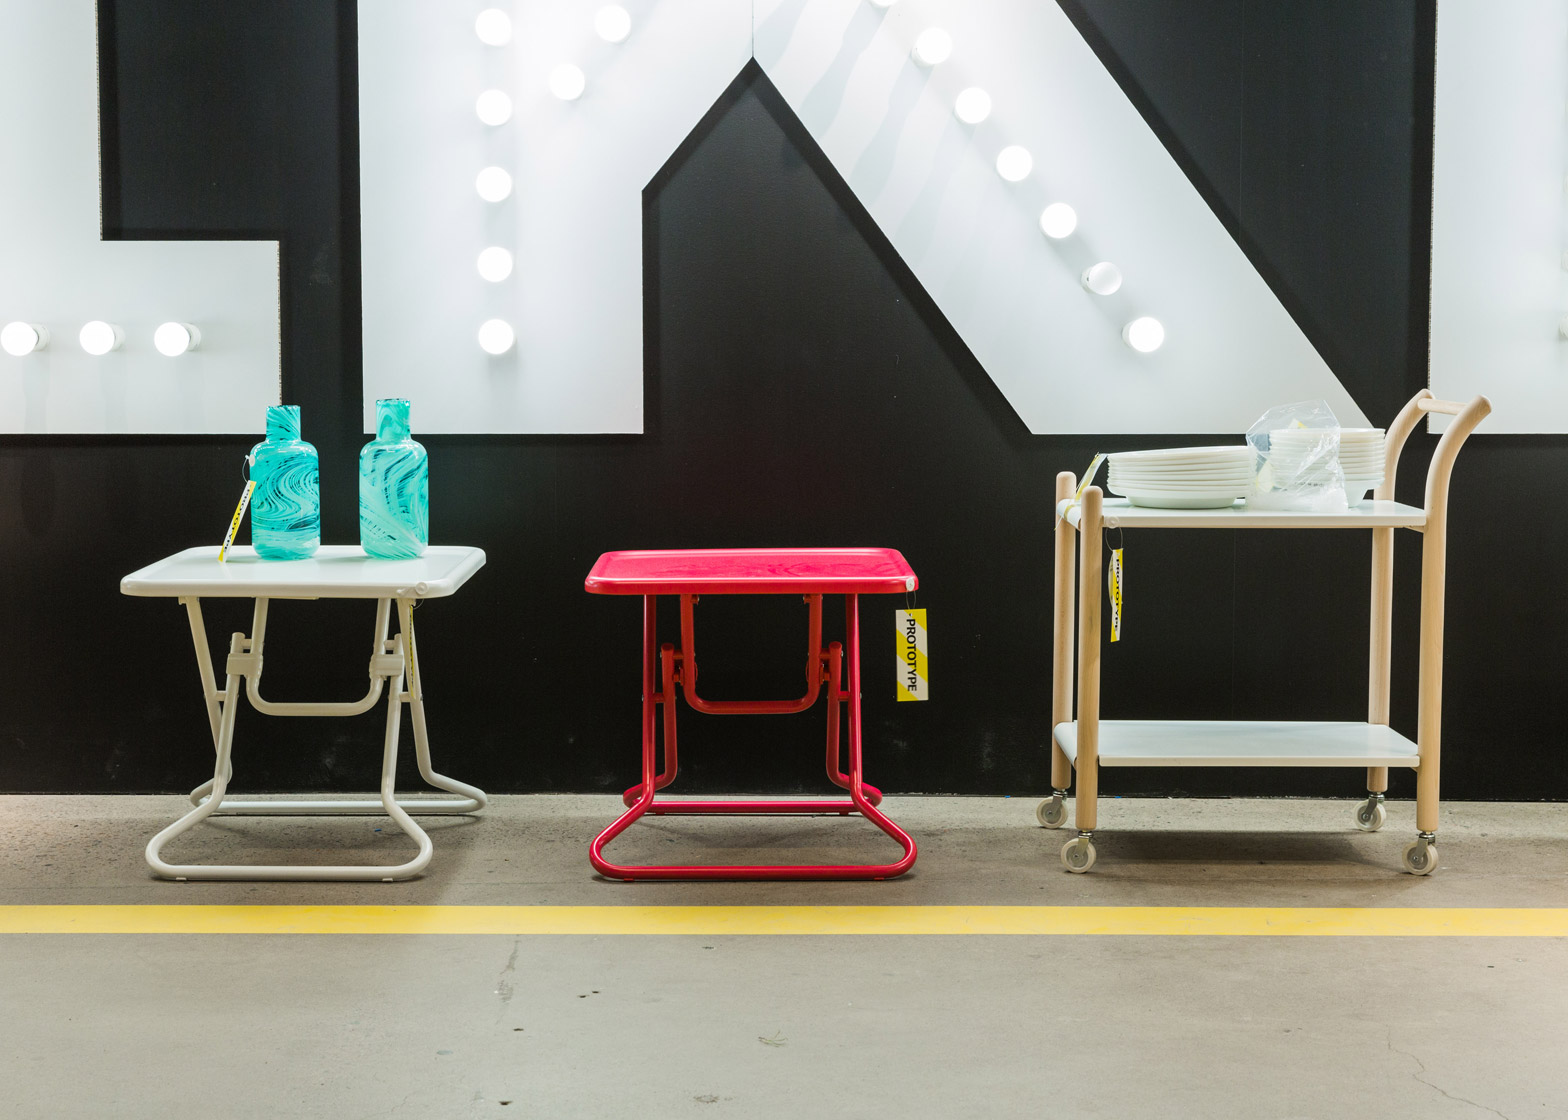 ikea-ps-17-collection-design-value-freedom-at-home-furniture-brand-young-urban-generation-launch_dezeen_1568_13